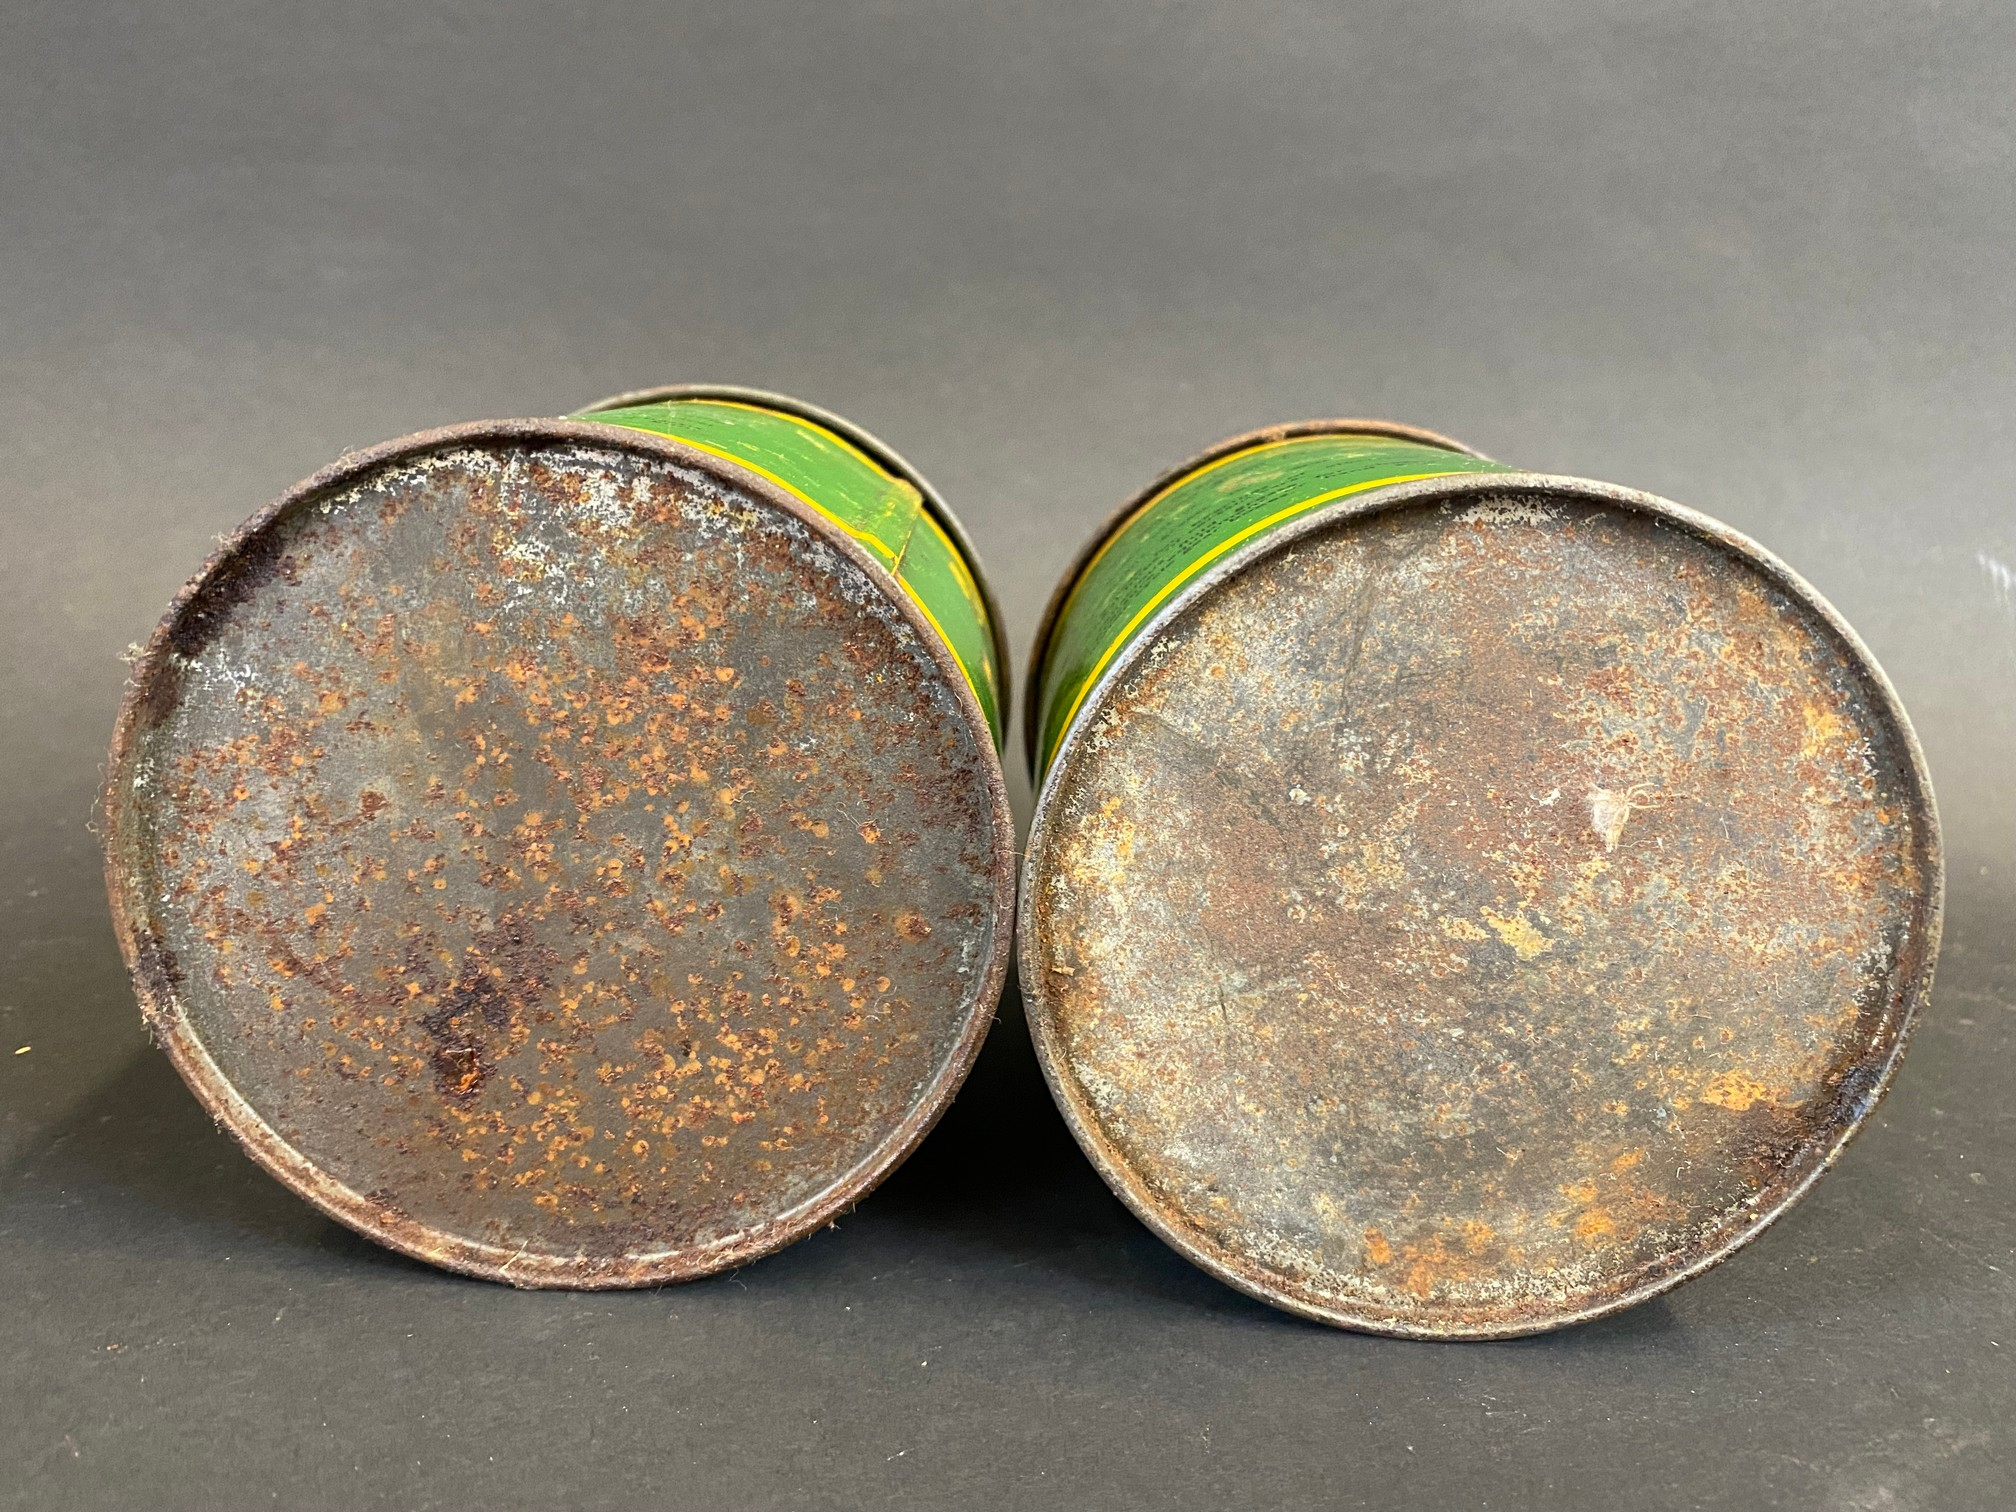 Two BP Energrease tins. - Image 4 of 4